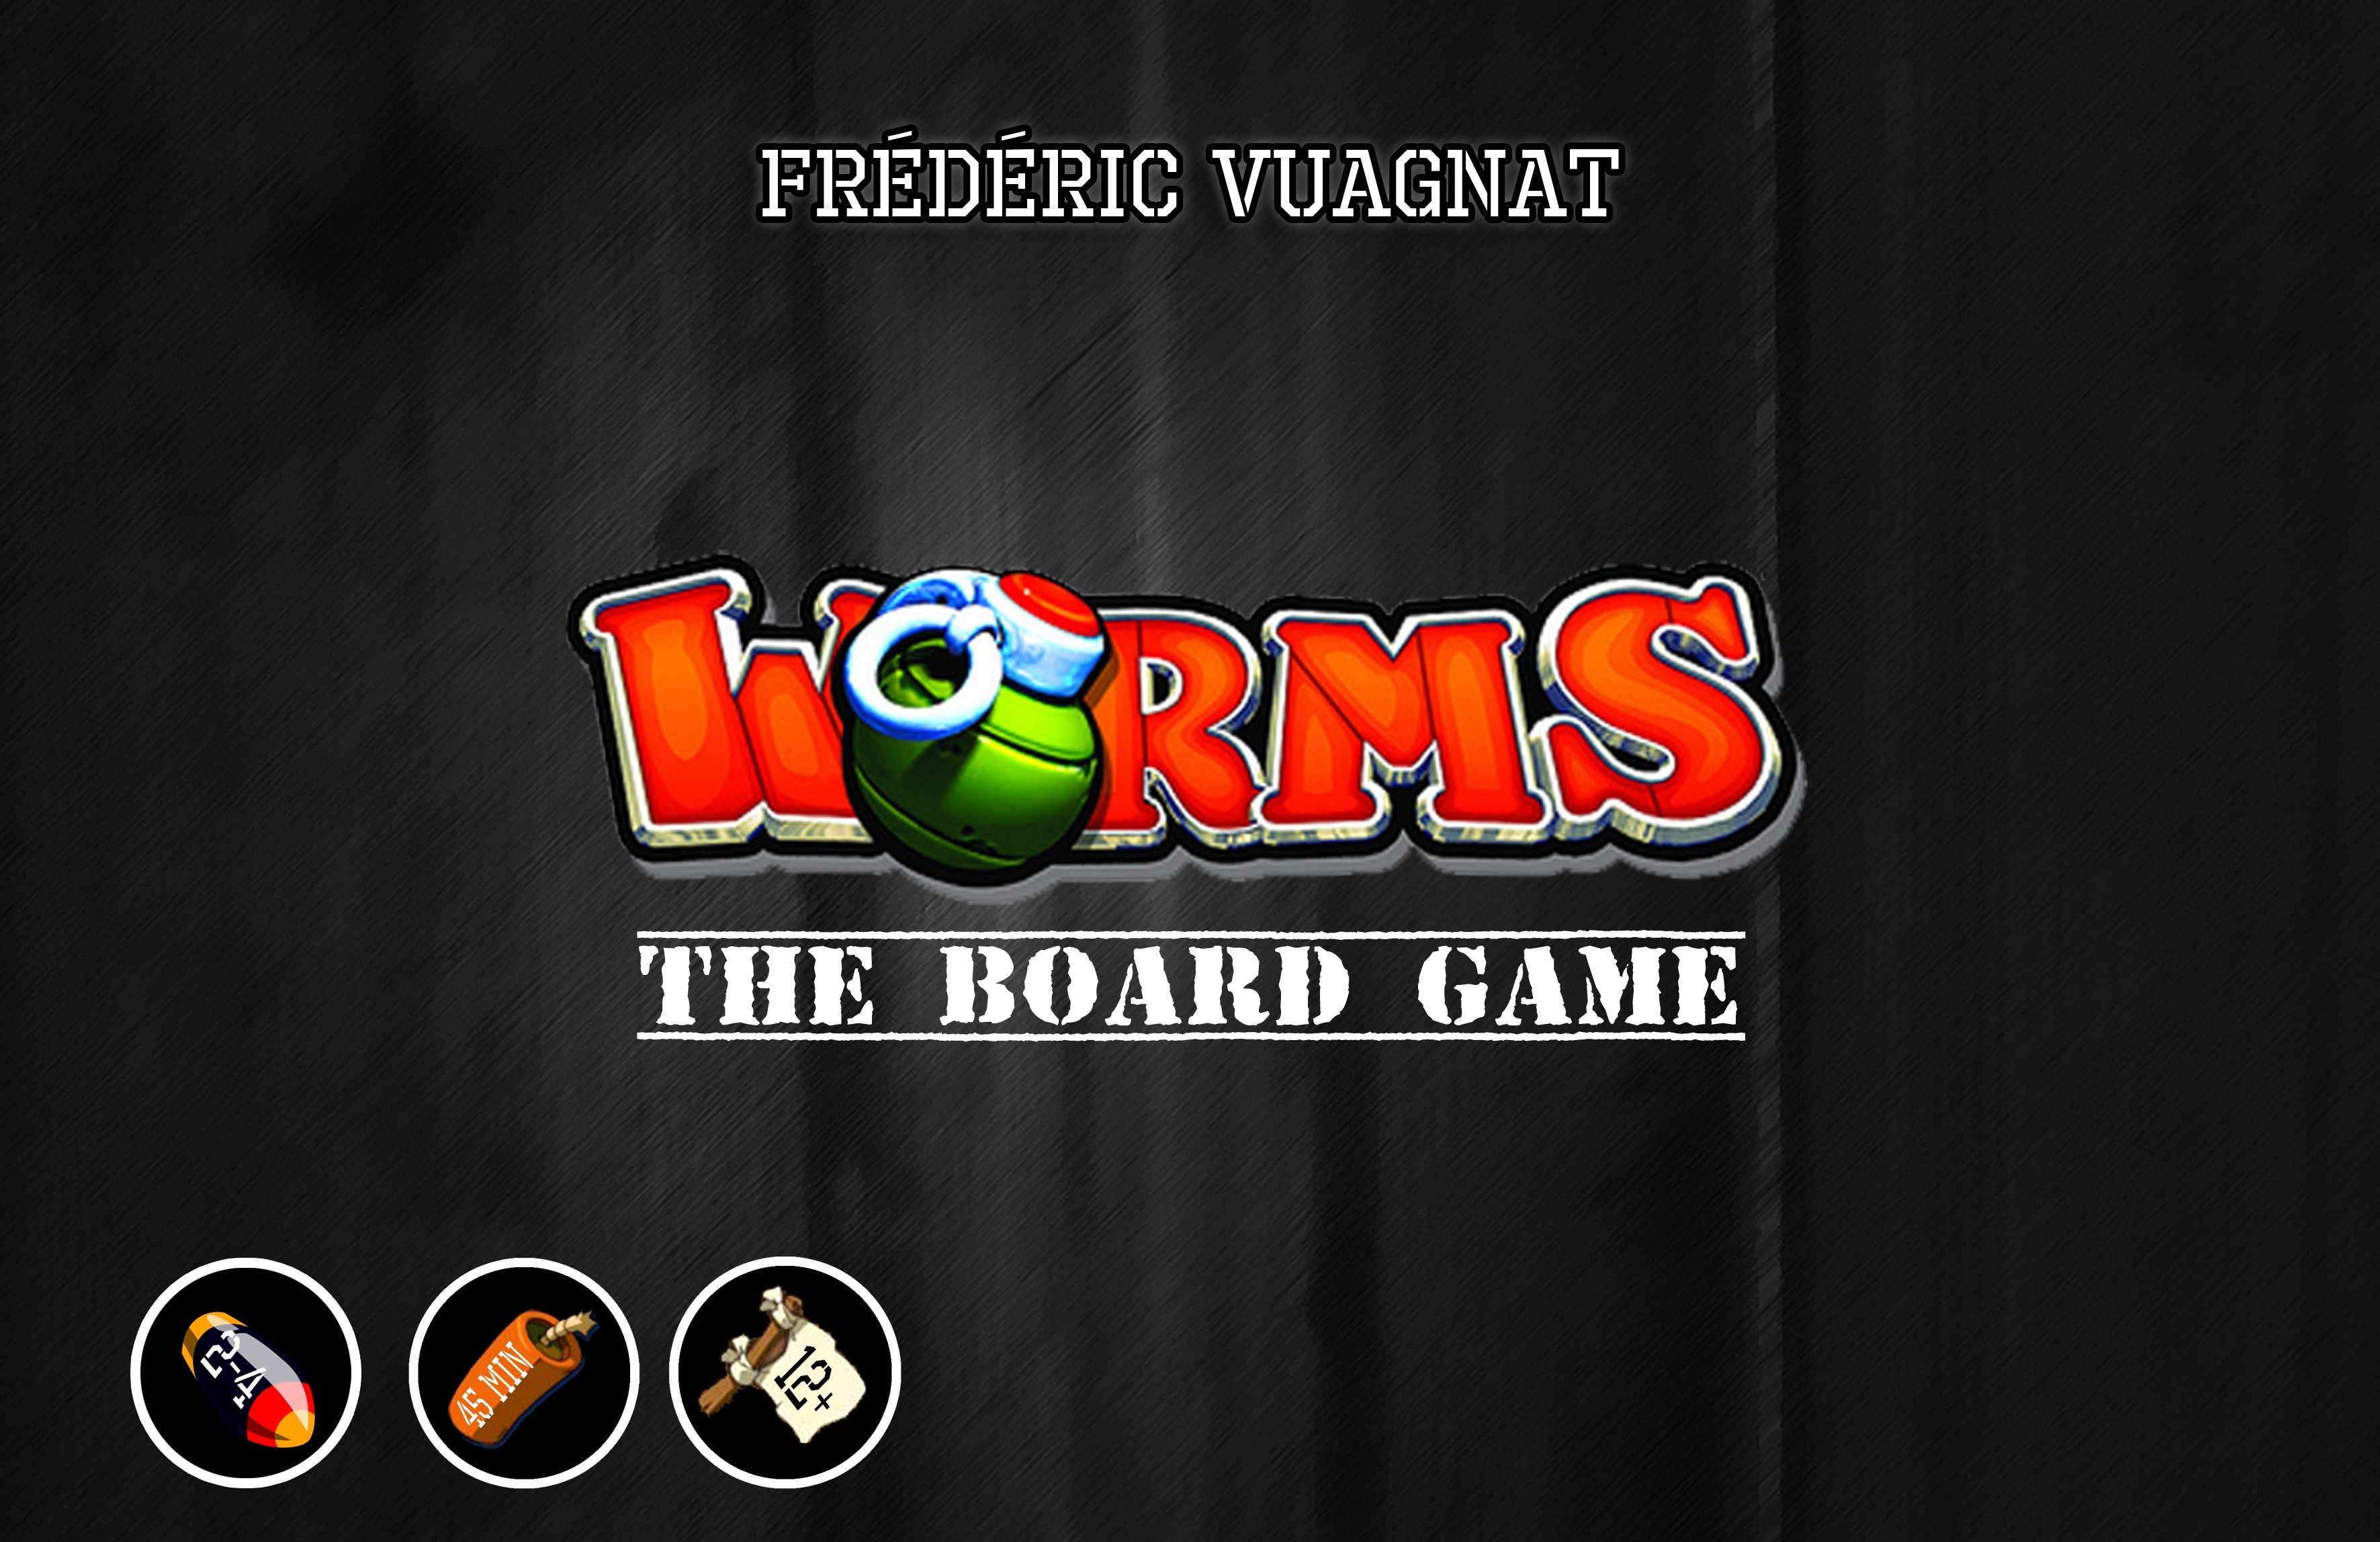 Worms - The Board Game